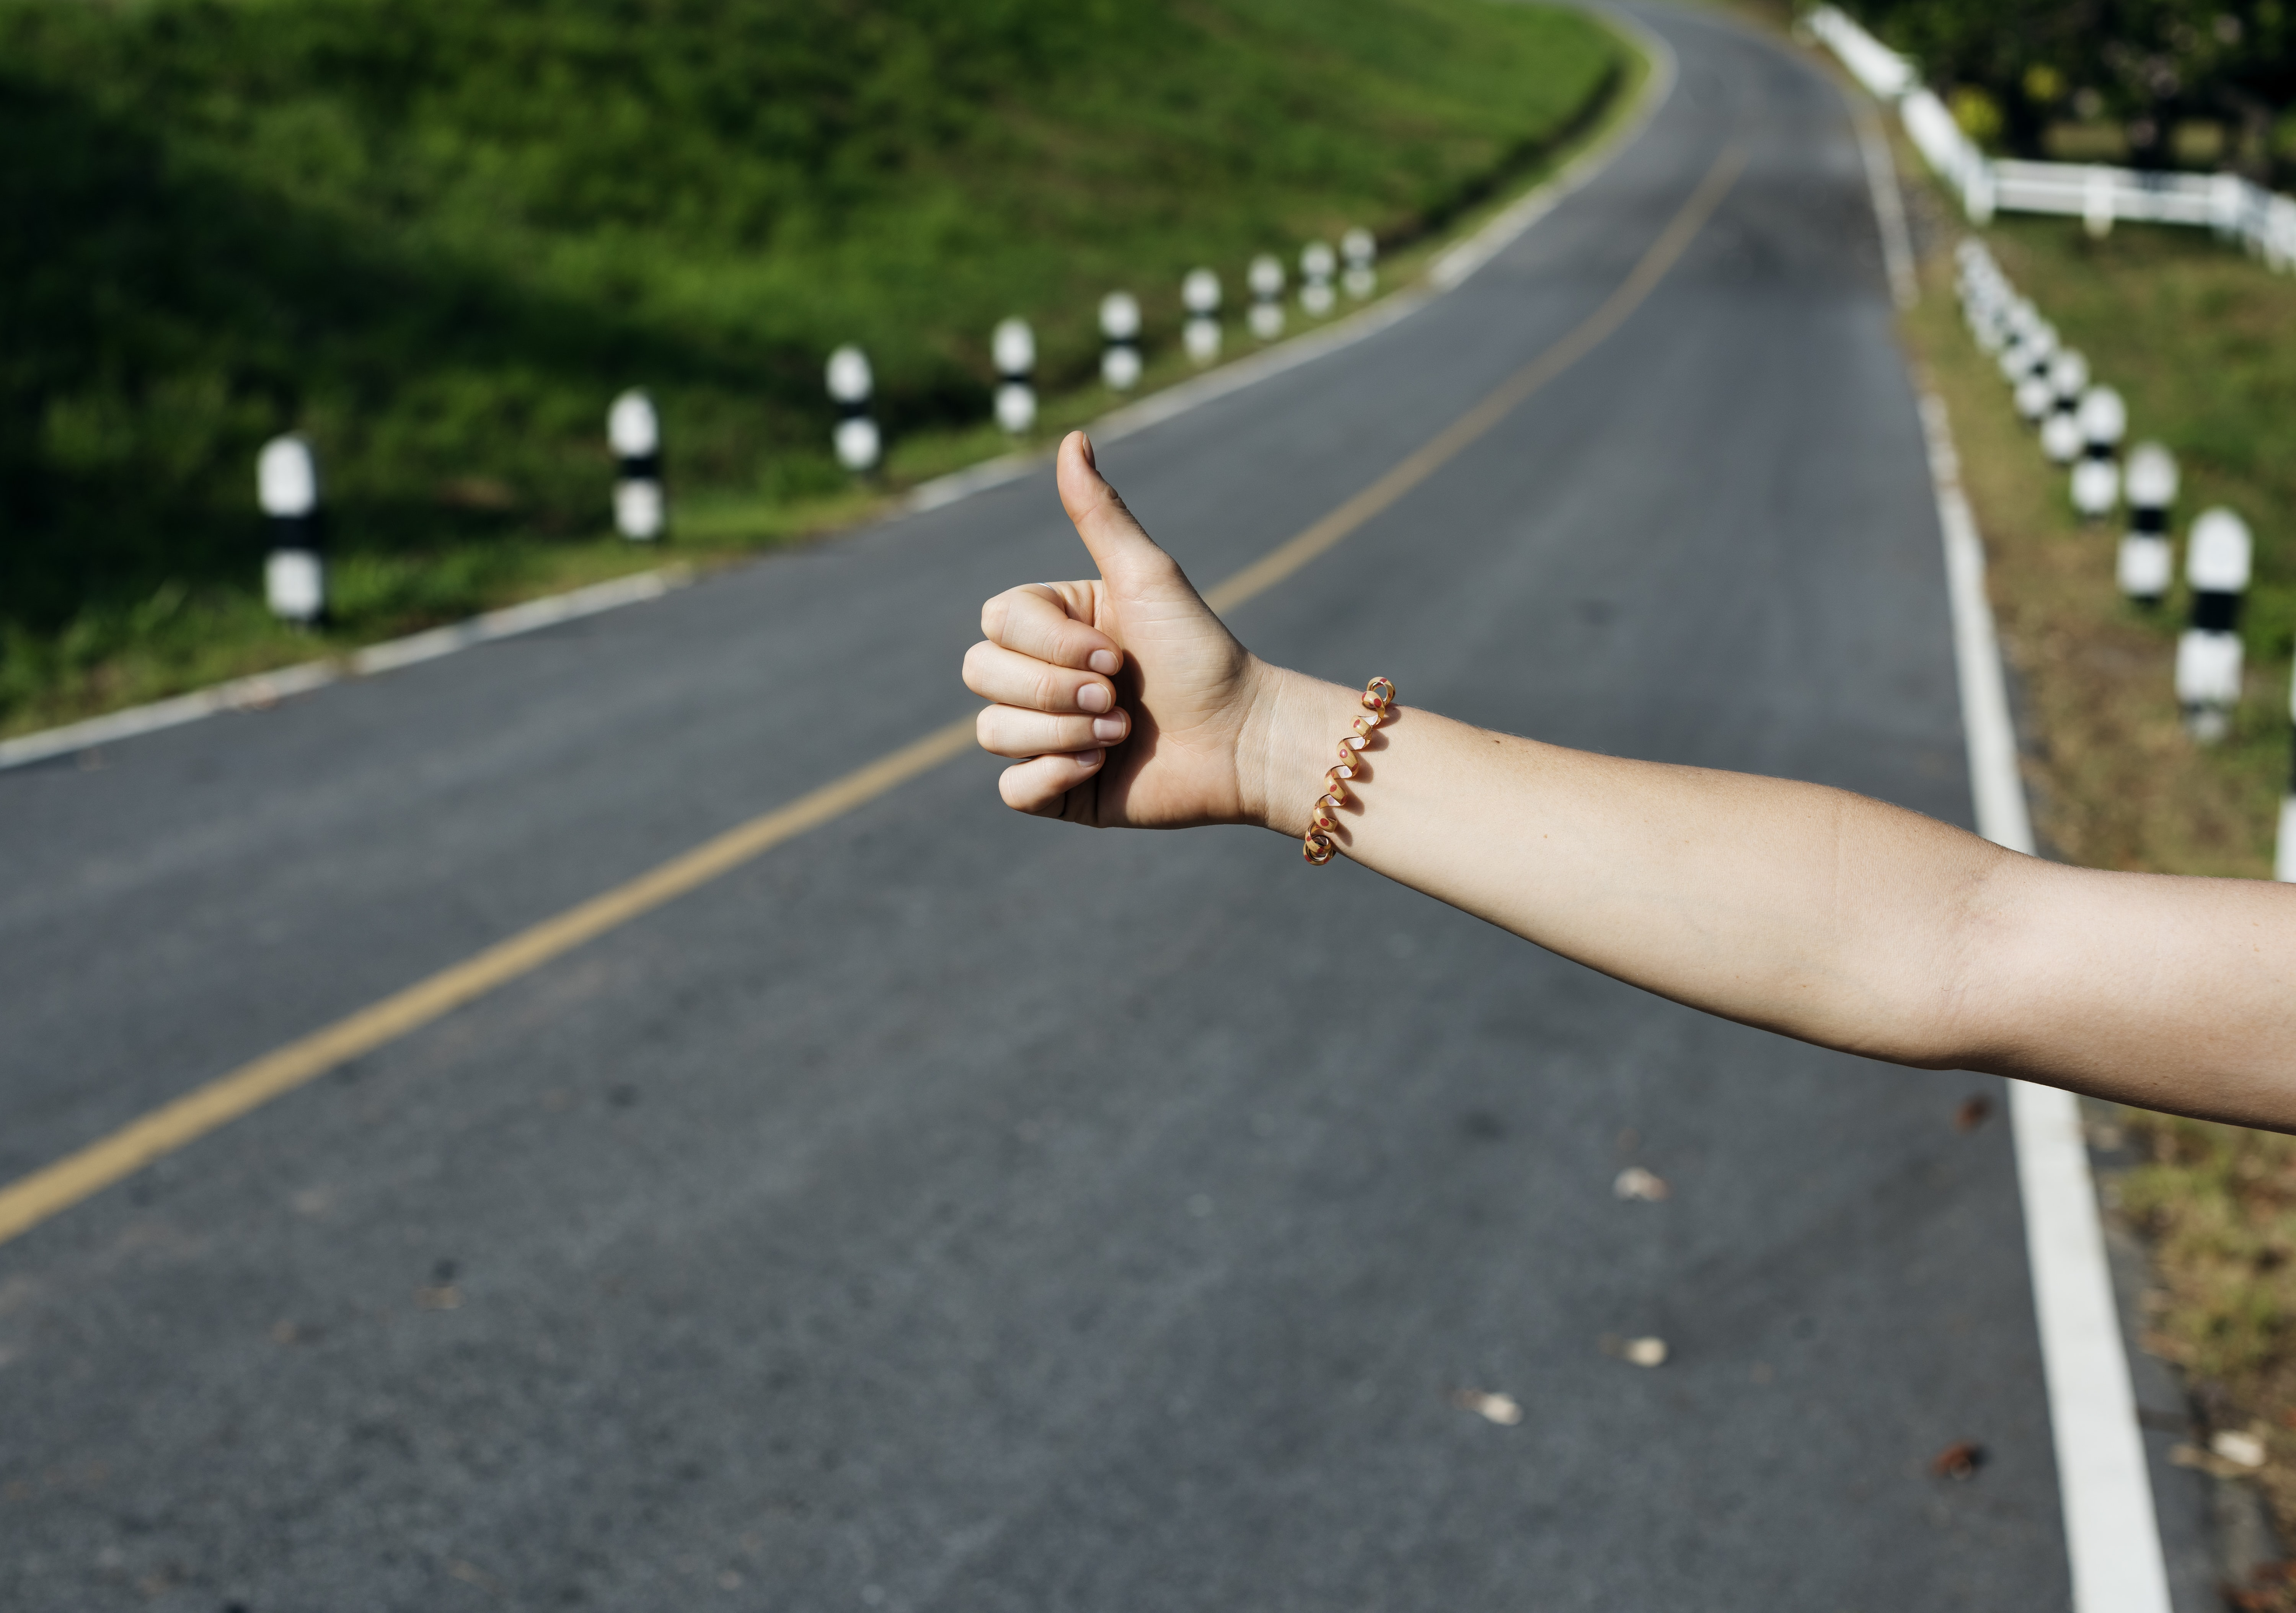 Person's arm with bracelet displaying hitch hiking sign near asphalt road